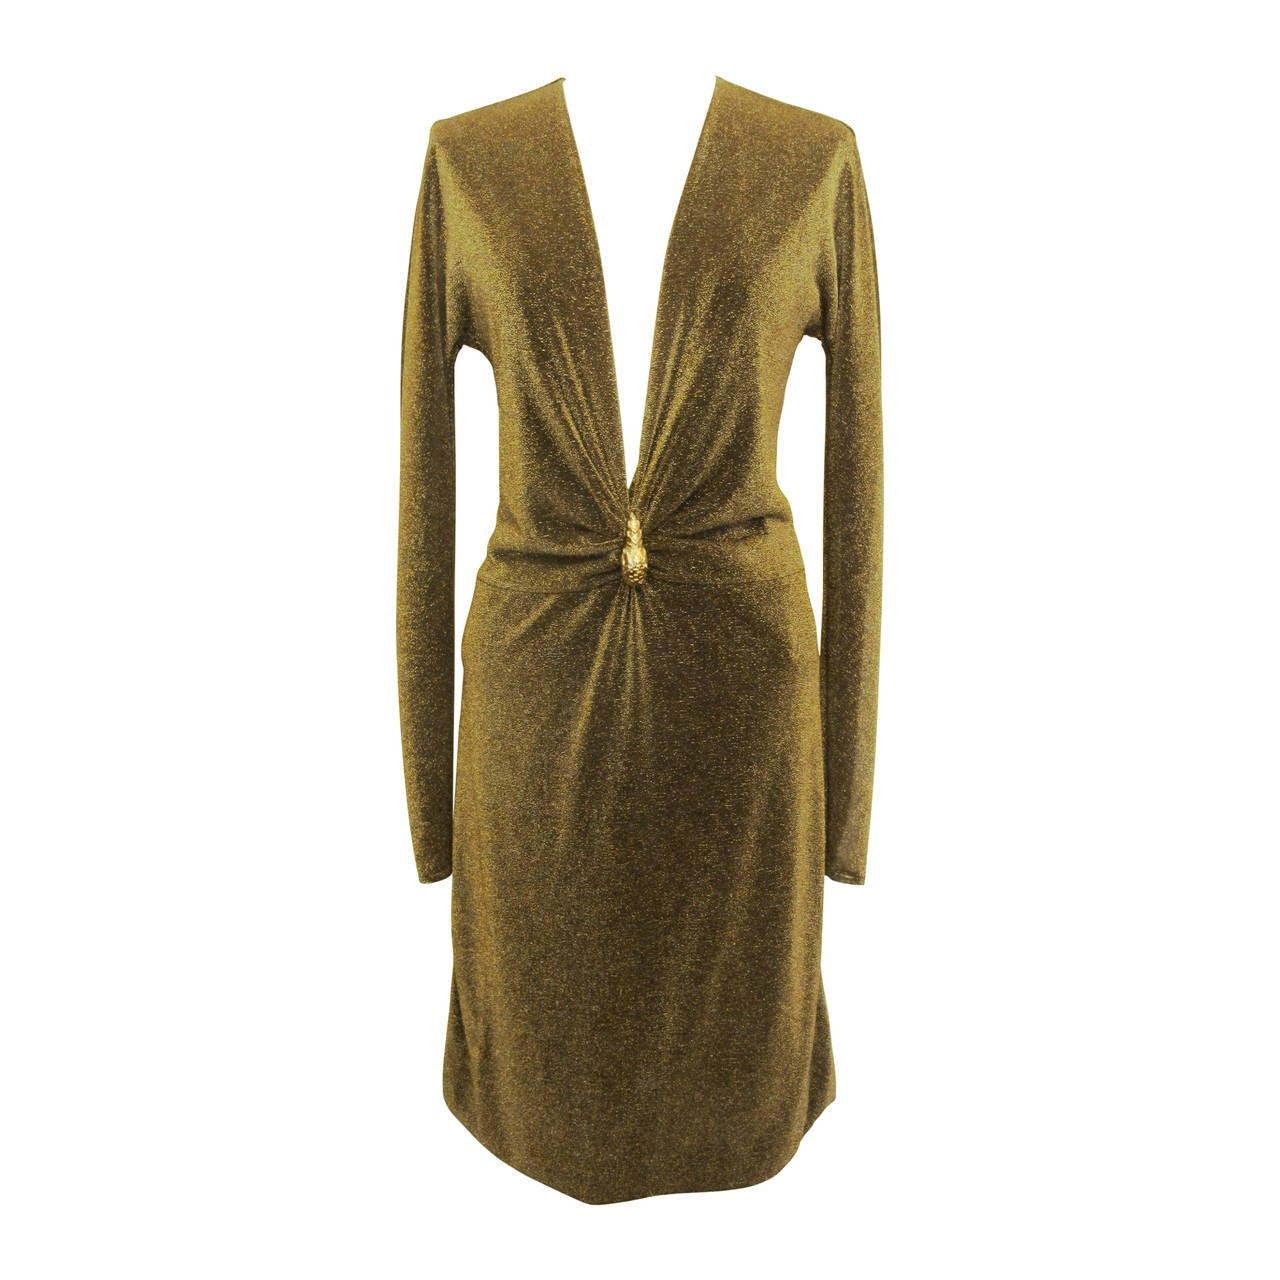 """New Tom Ford """"Gucci"""" Metallic Gold Cocktail Dress with Tiger Ornamentation 1"""